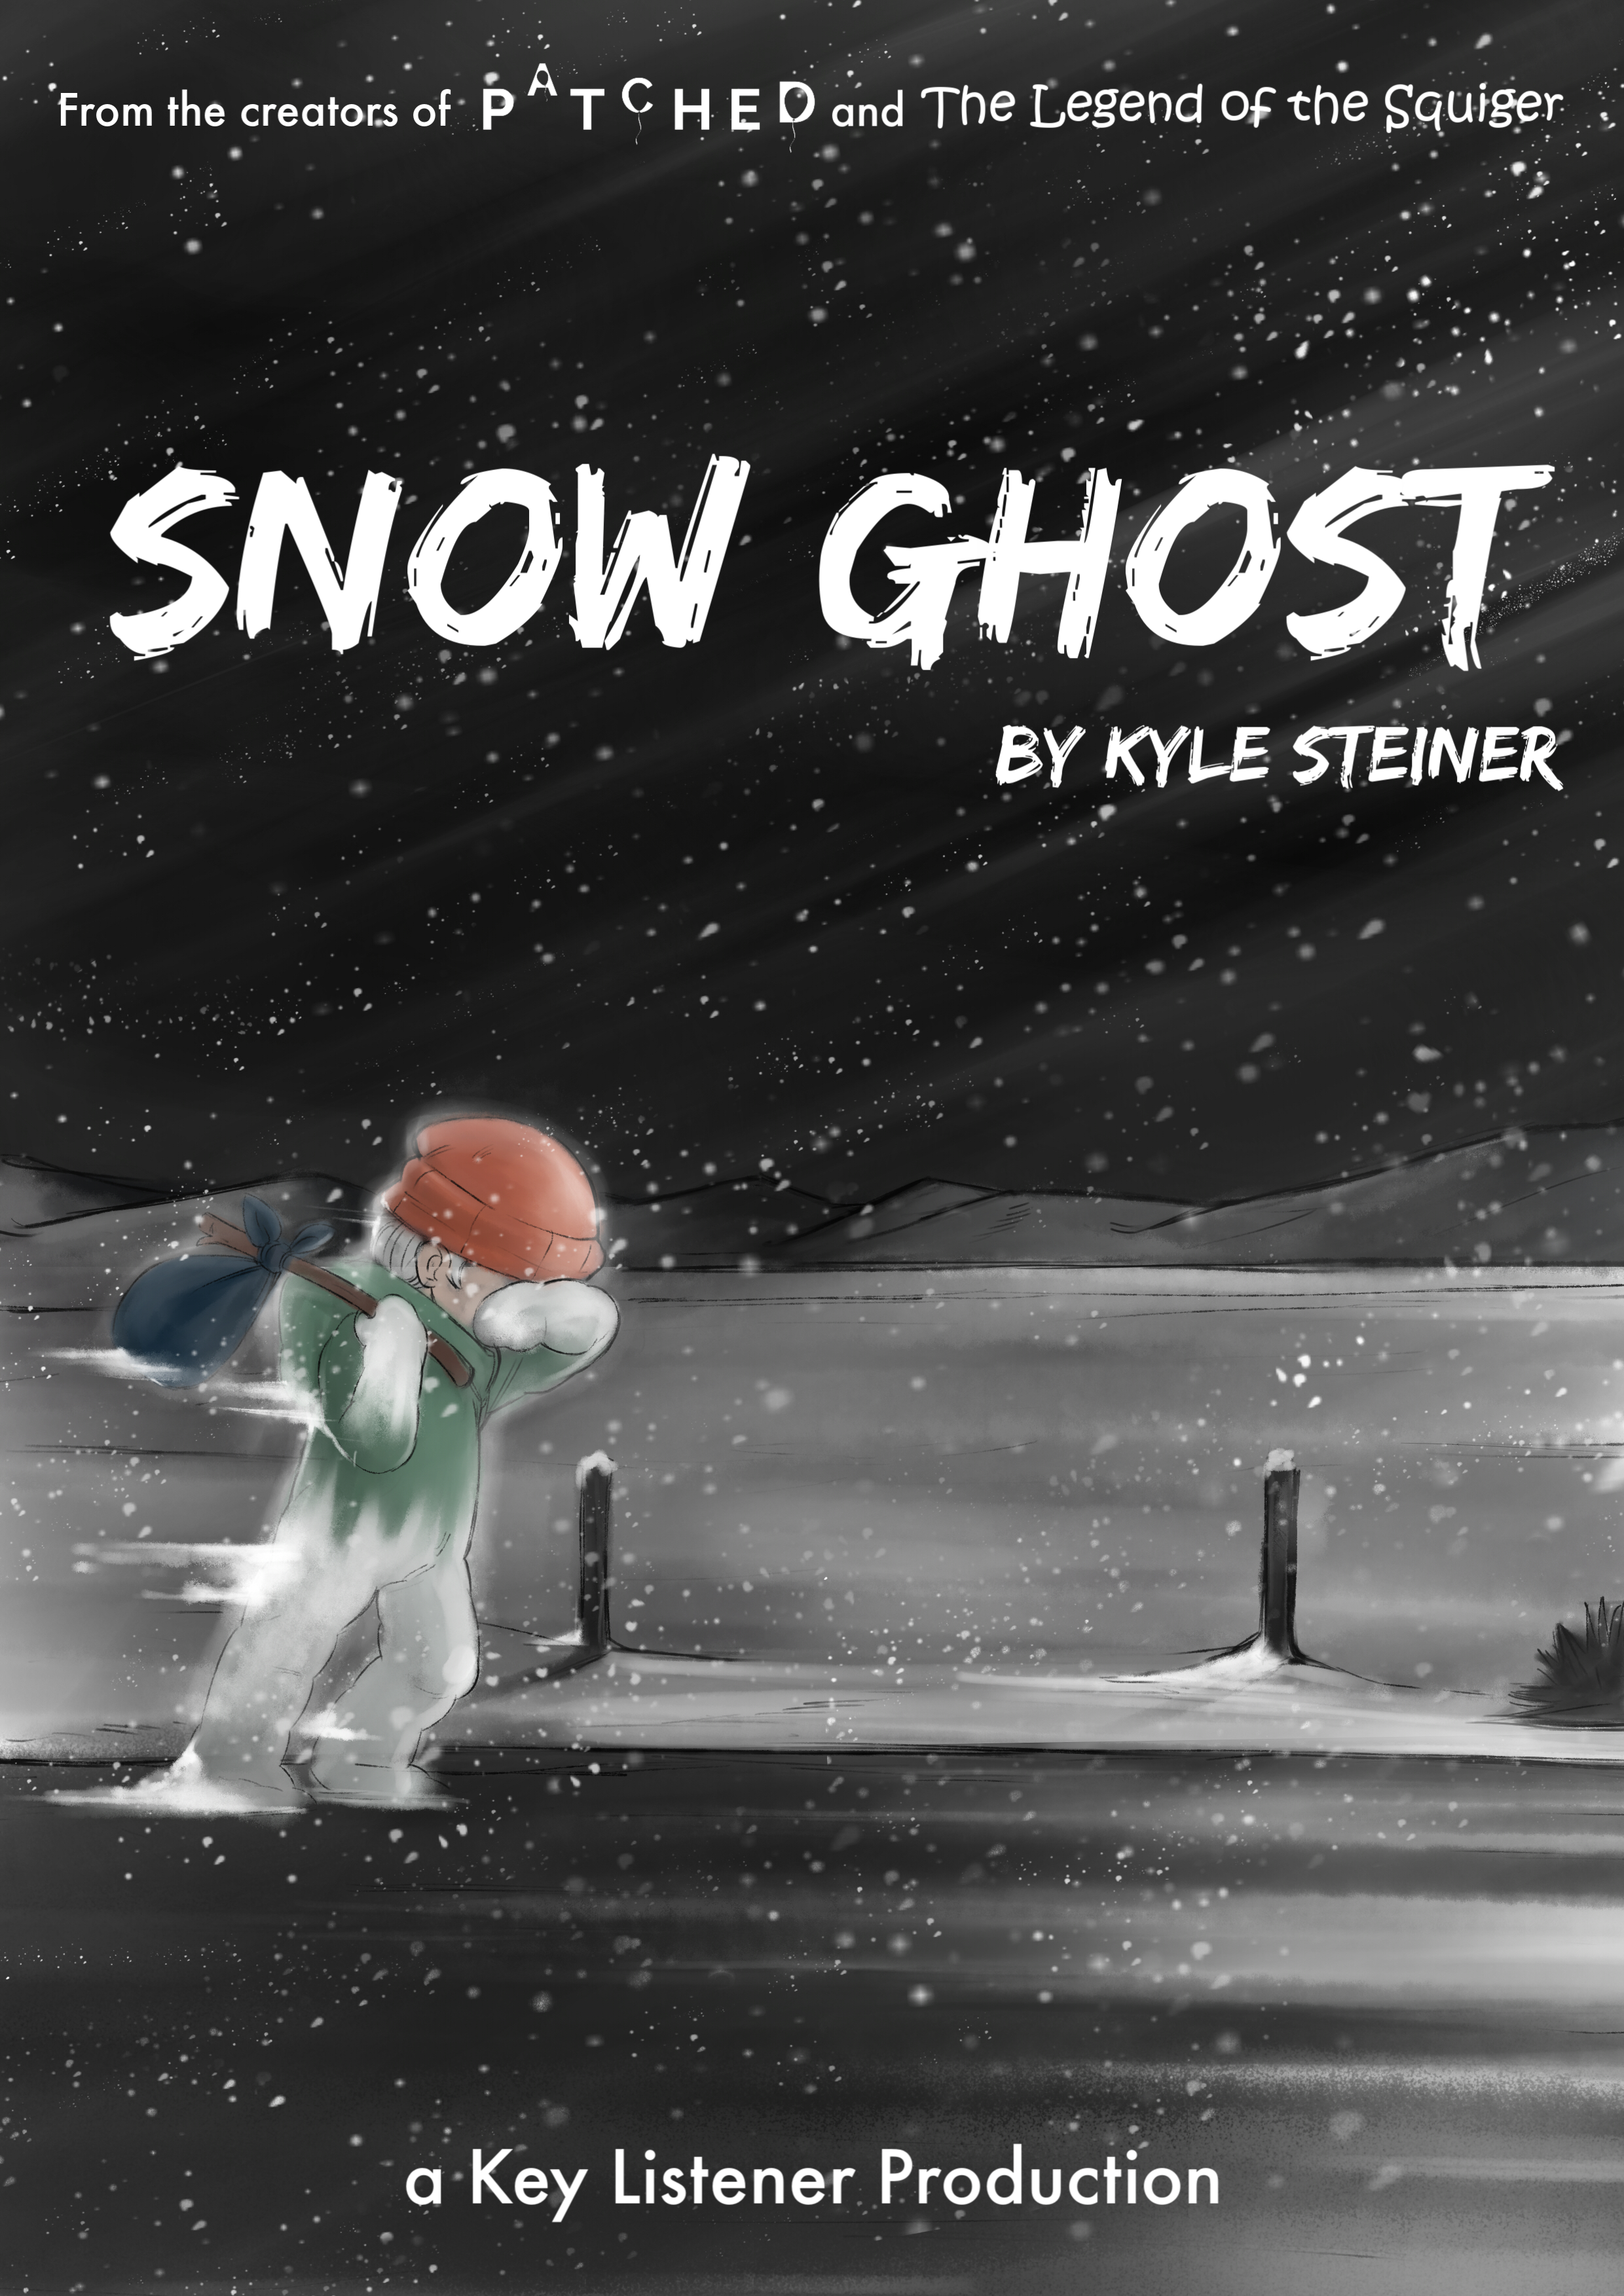 Snow Ghost by Kyle Steiner